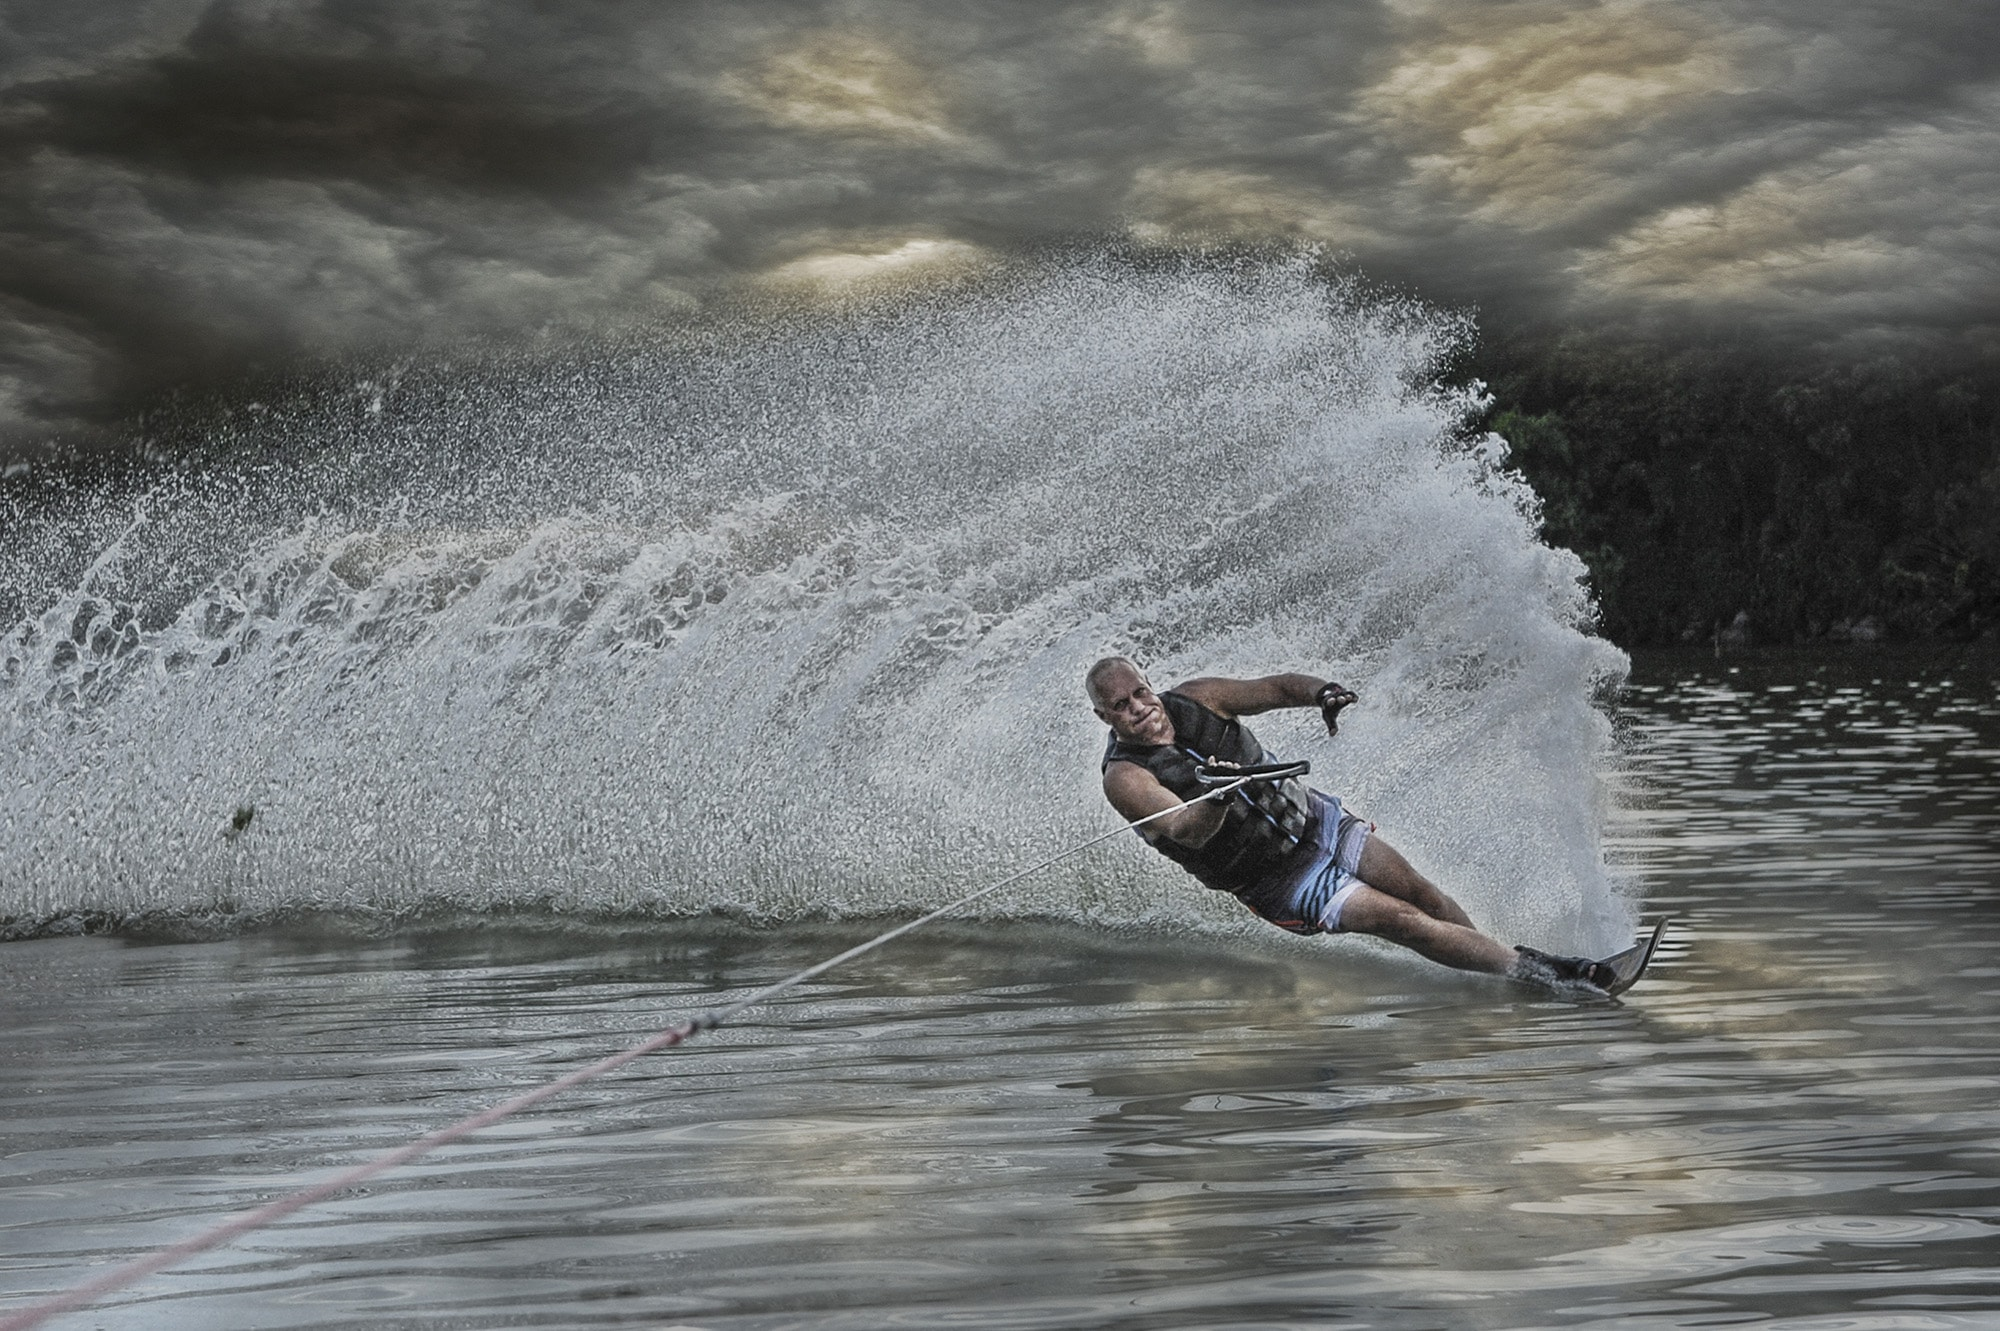 Sports Water Skiing